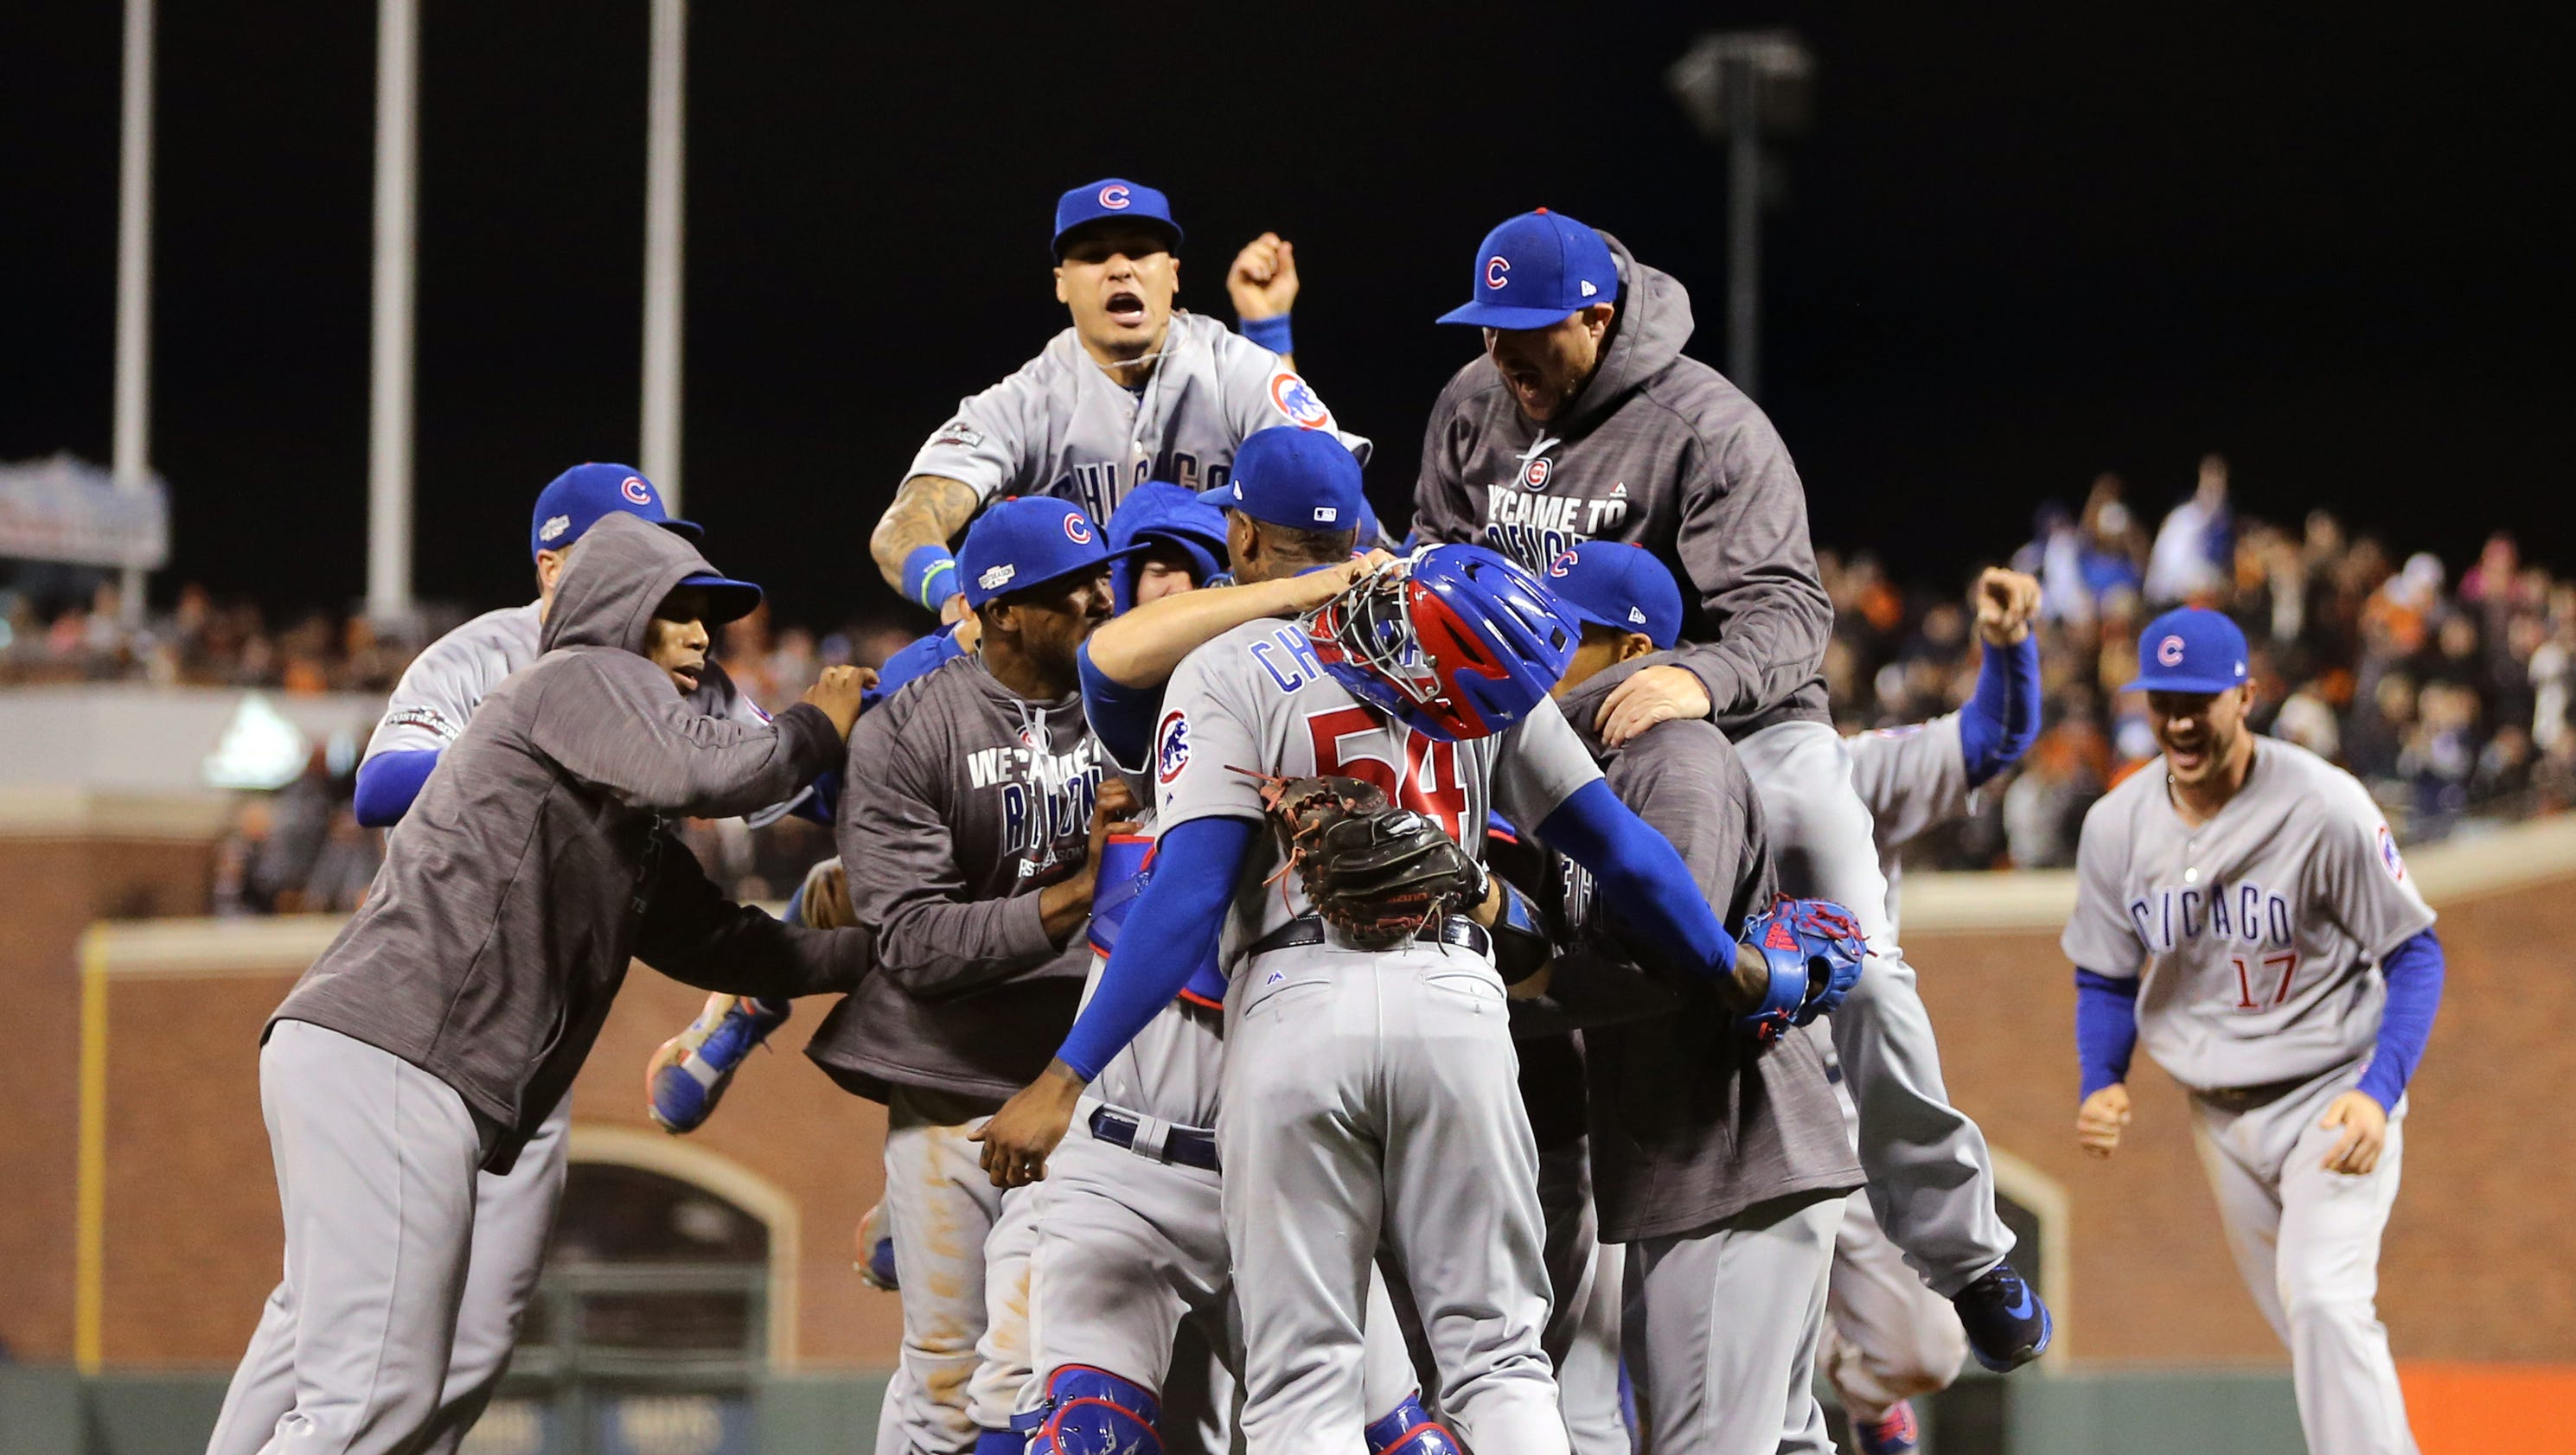 636118286658978865-usp-mlb-nlds-chicago-cubs-at-san-francisco-giants-85927546